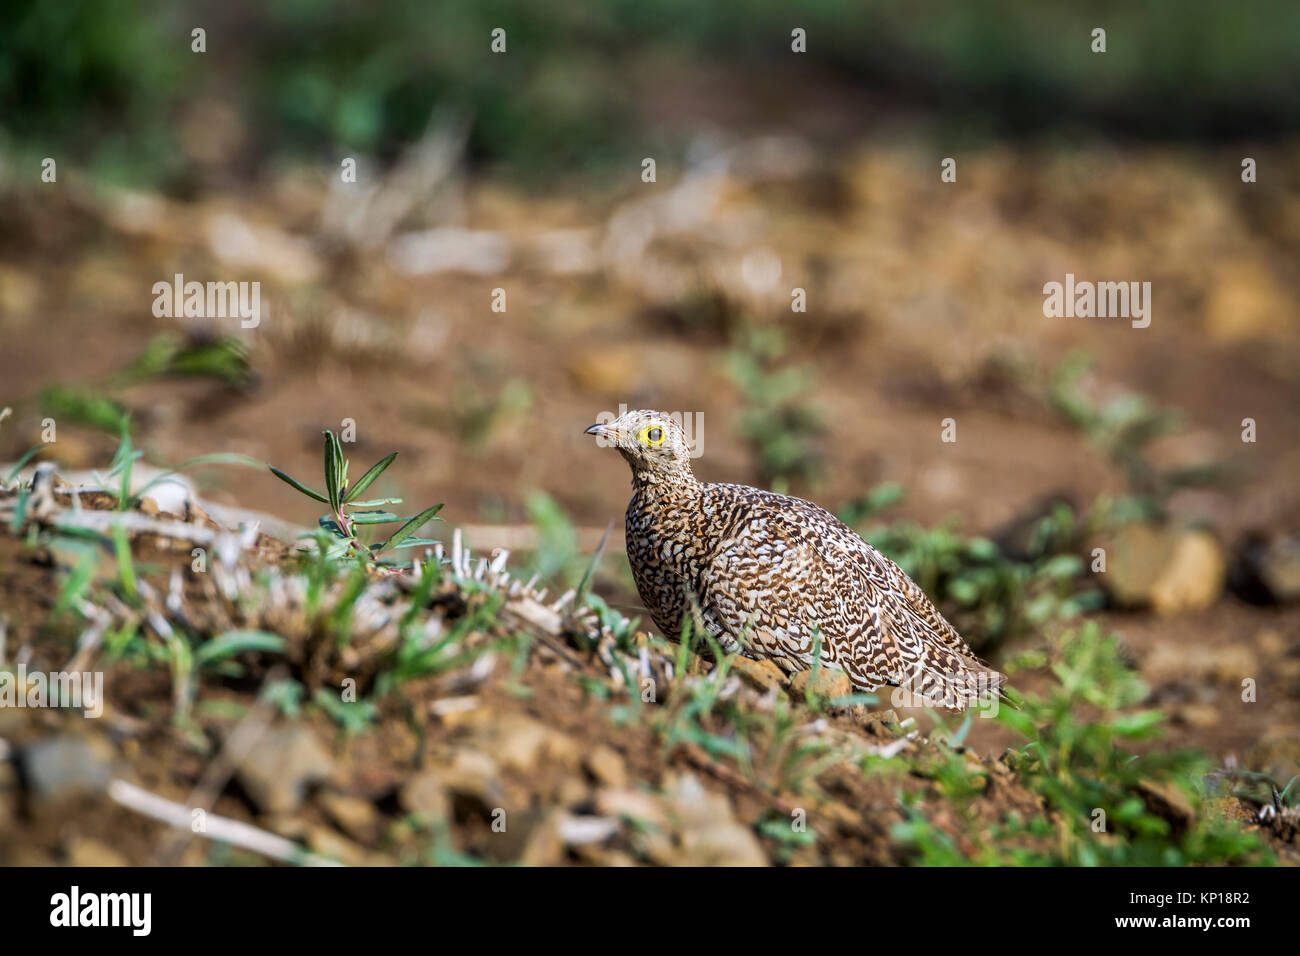 Double-banded sandgrouse in Kruger national park, South Africa ; Specie Pterocles bicinctus family of Pteroclidae Stock Photo